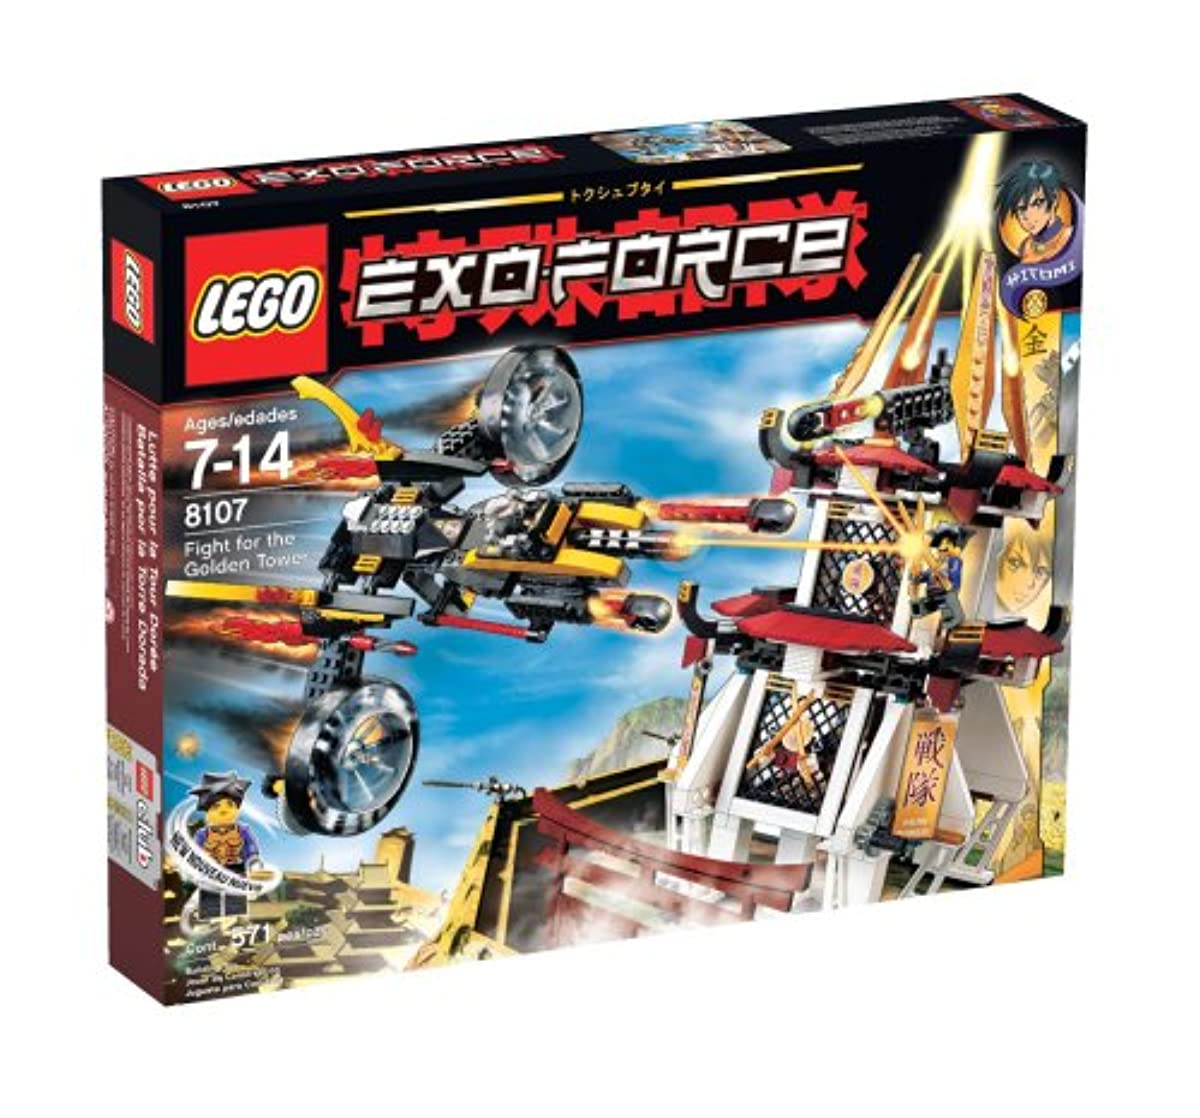 [해외] LEGO EXOFORCE FIGHT FOR THE GOLDEN TOWER